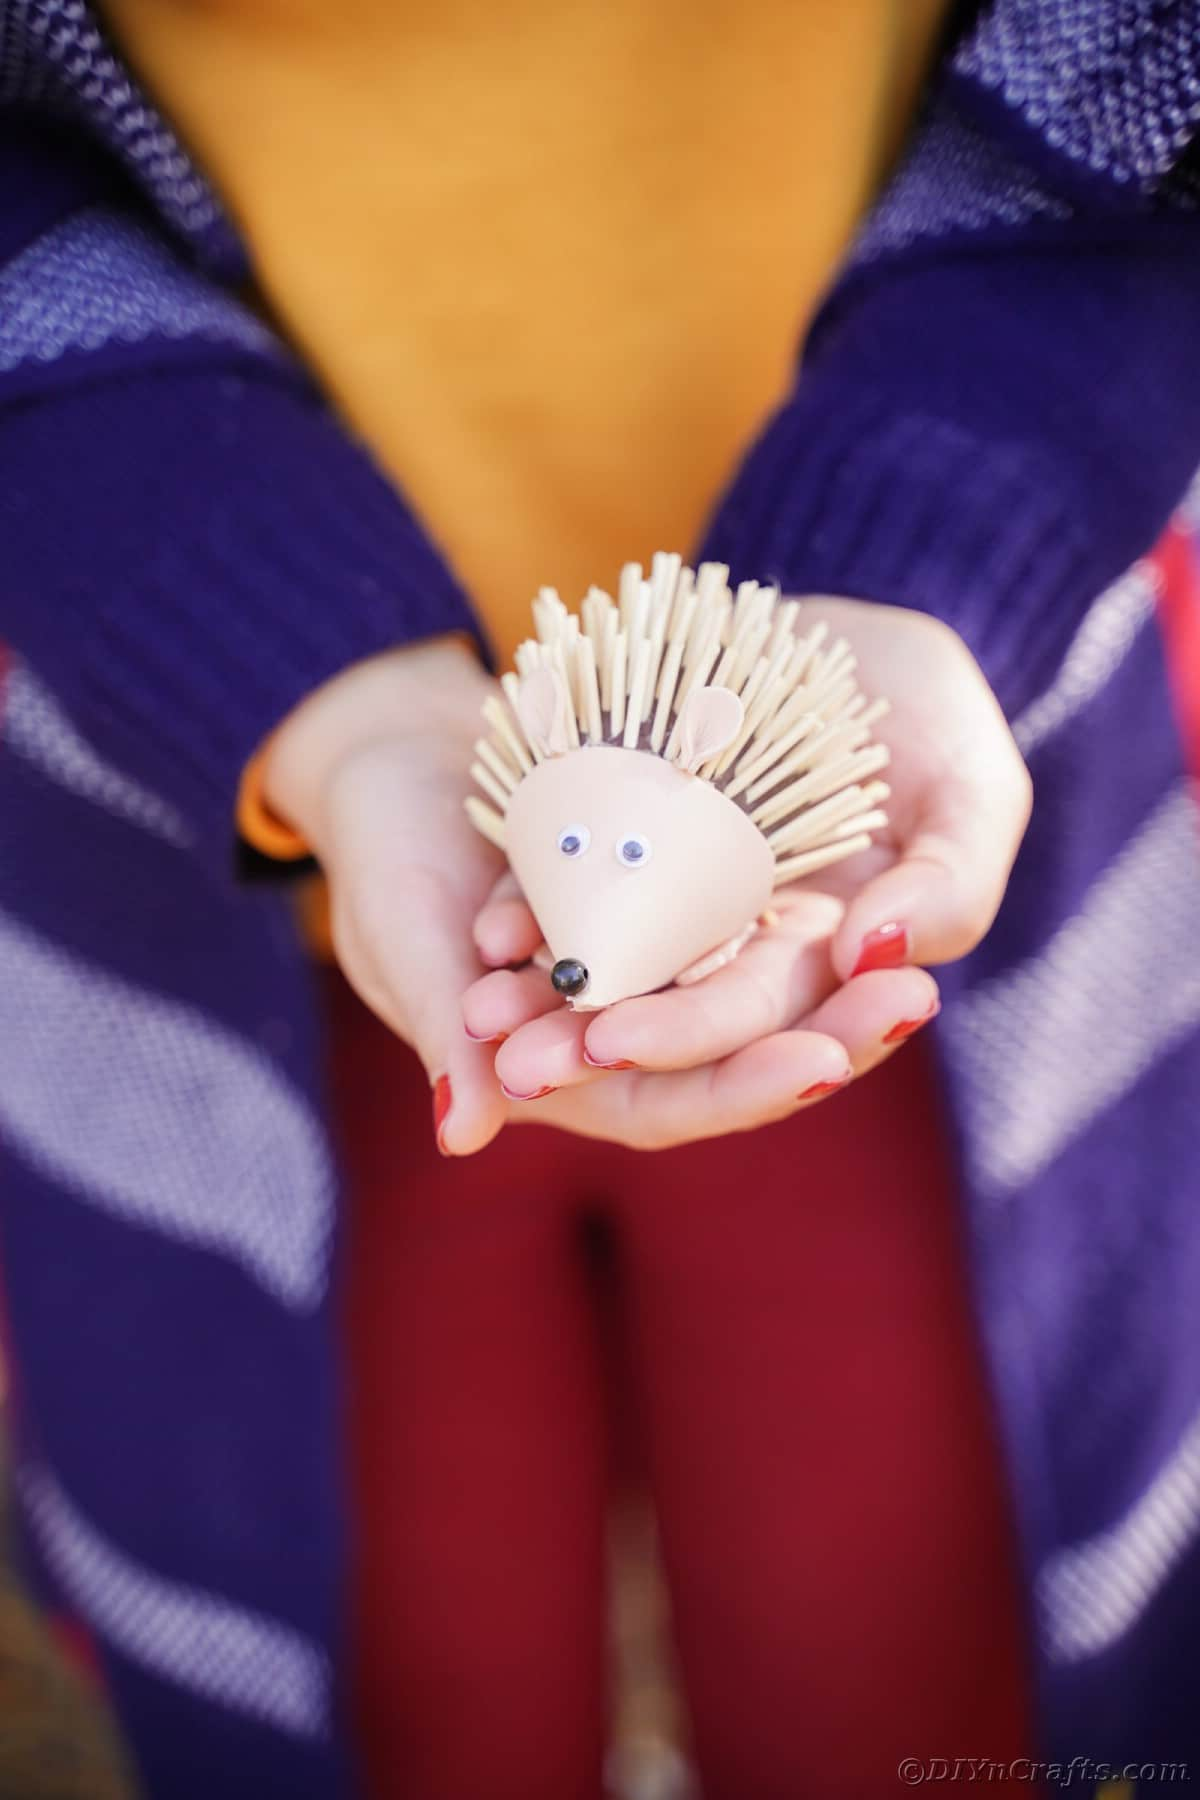 Woman in blue jacket holding hedgehog toy in hands